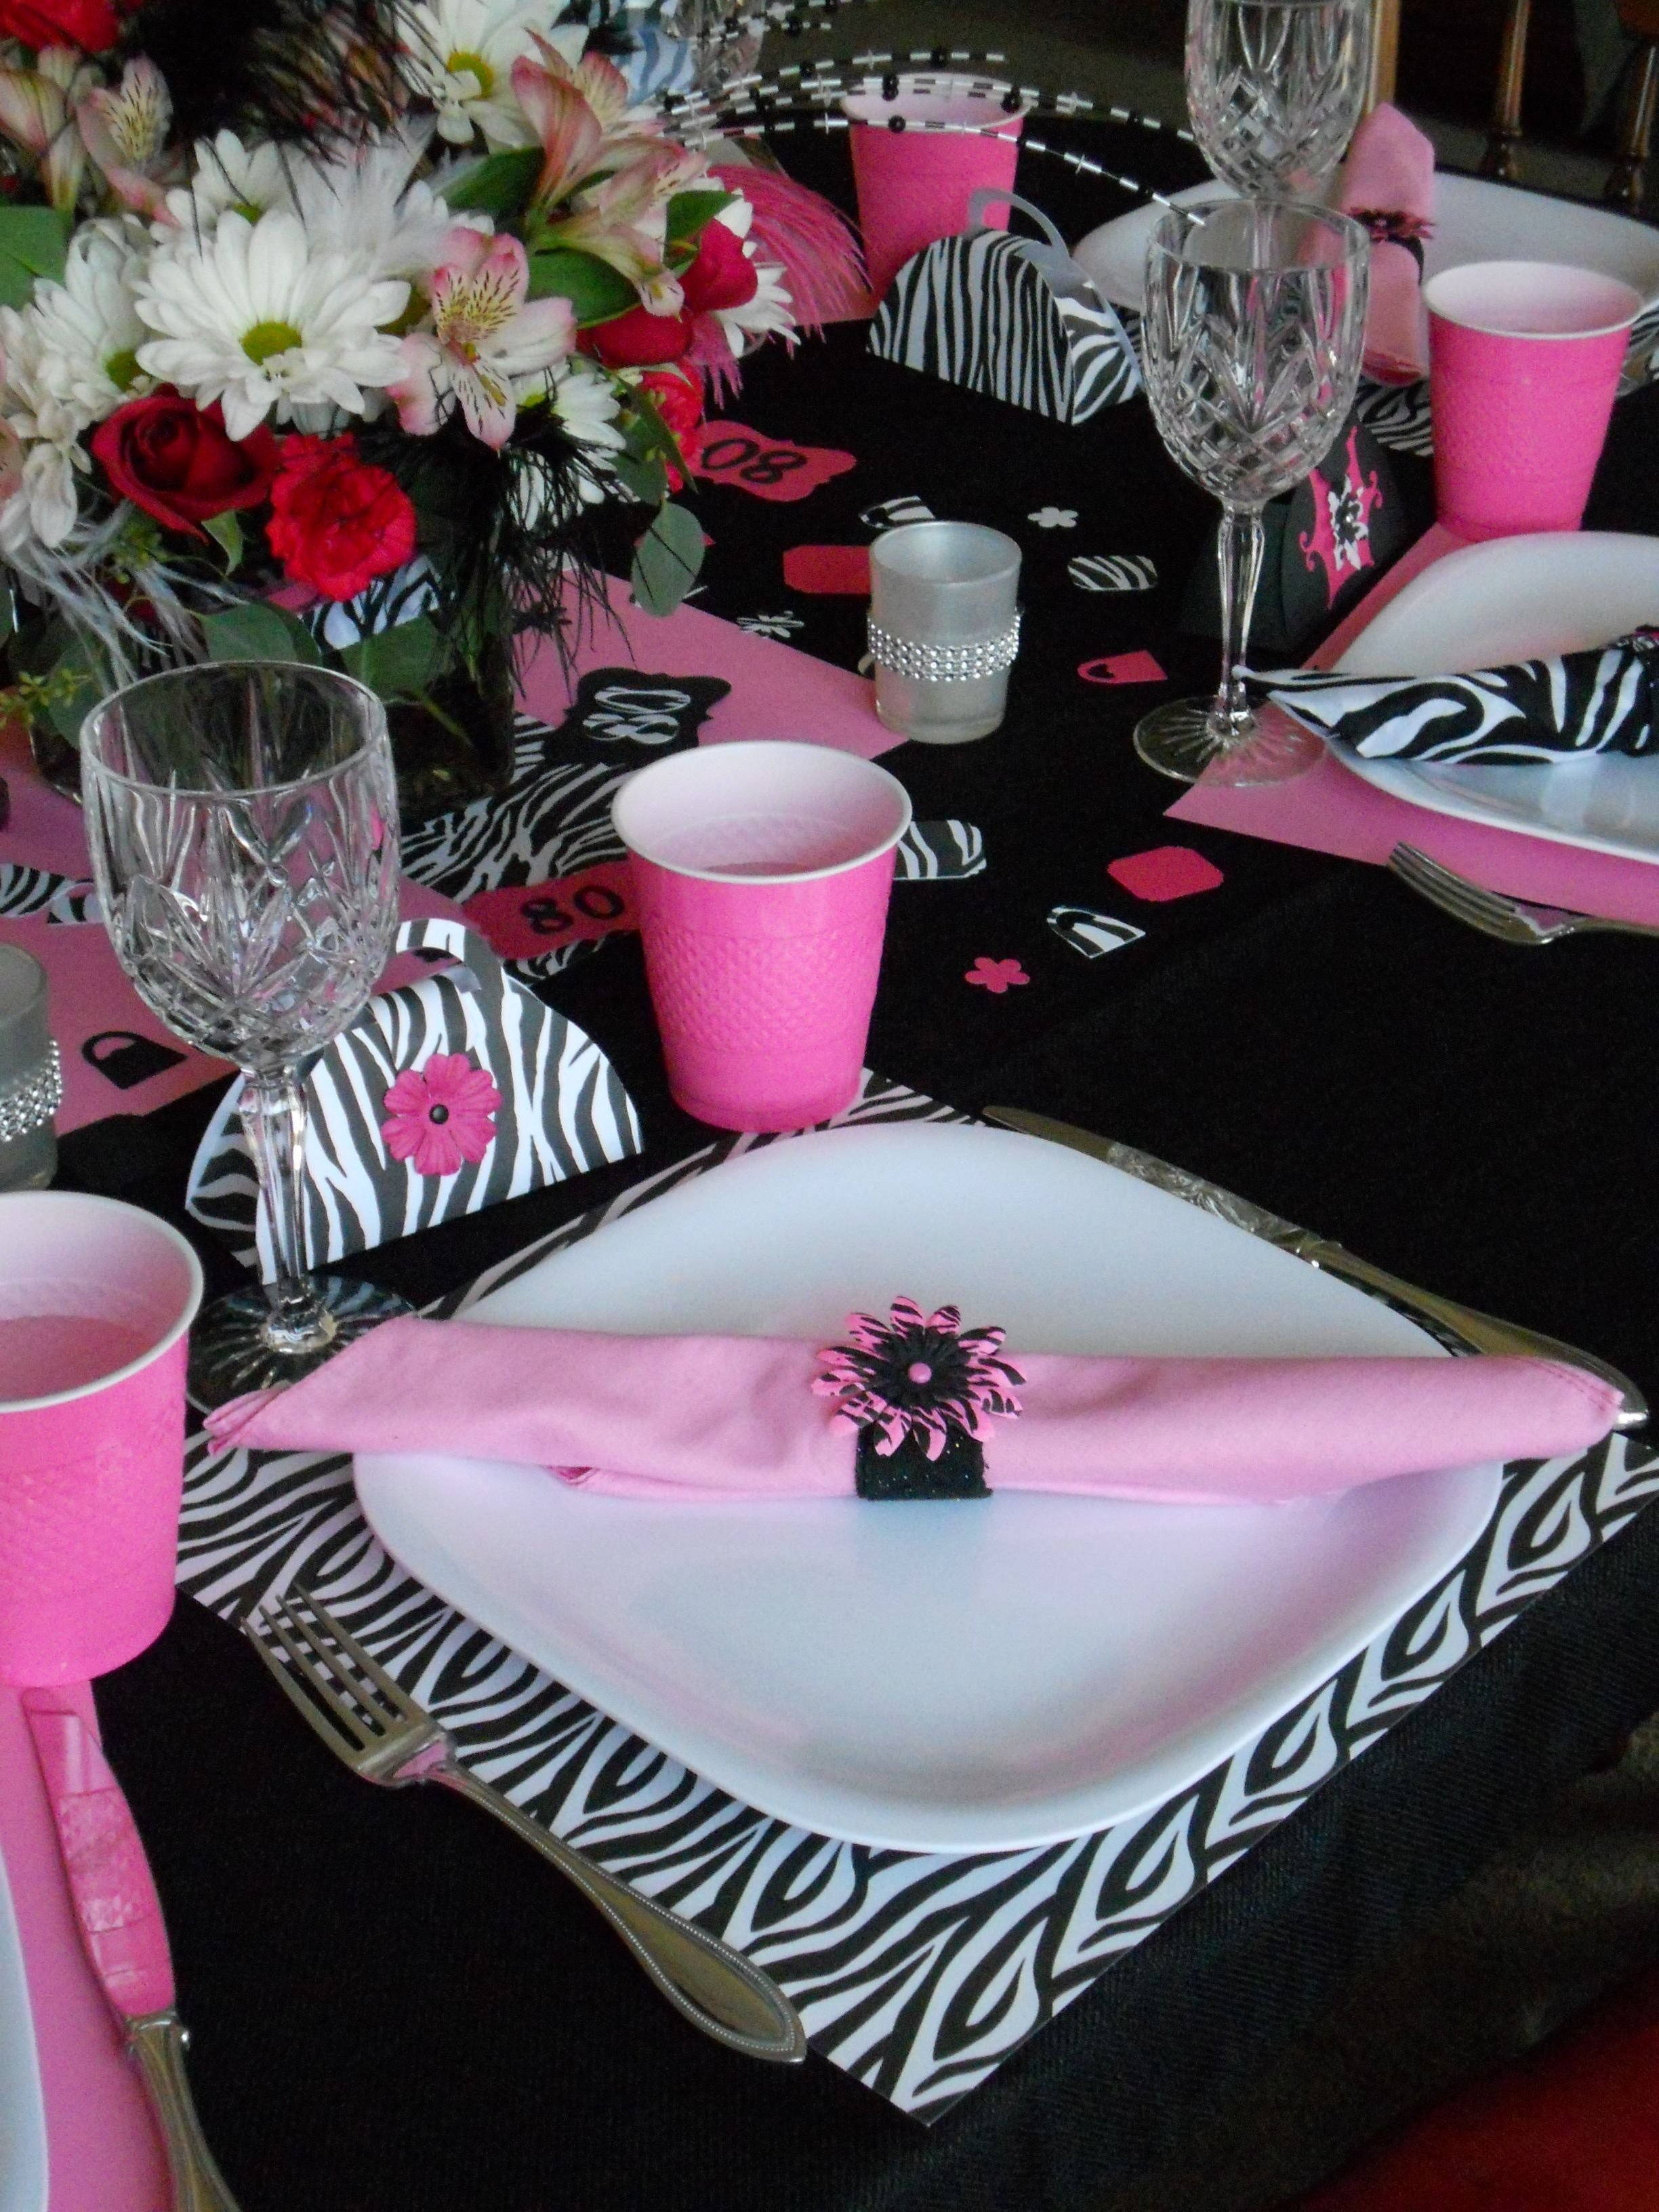 10 Unique 80Th Birthday Party Ideas For Mom our table setting for grandmas fabulous 80th birthday party 2020